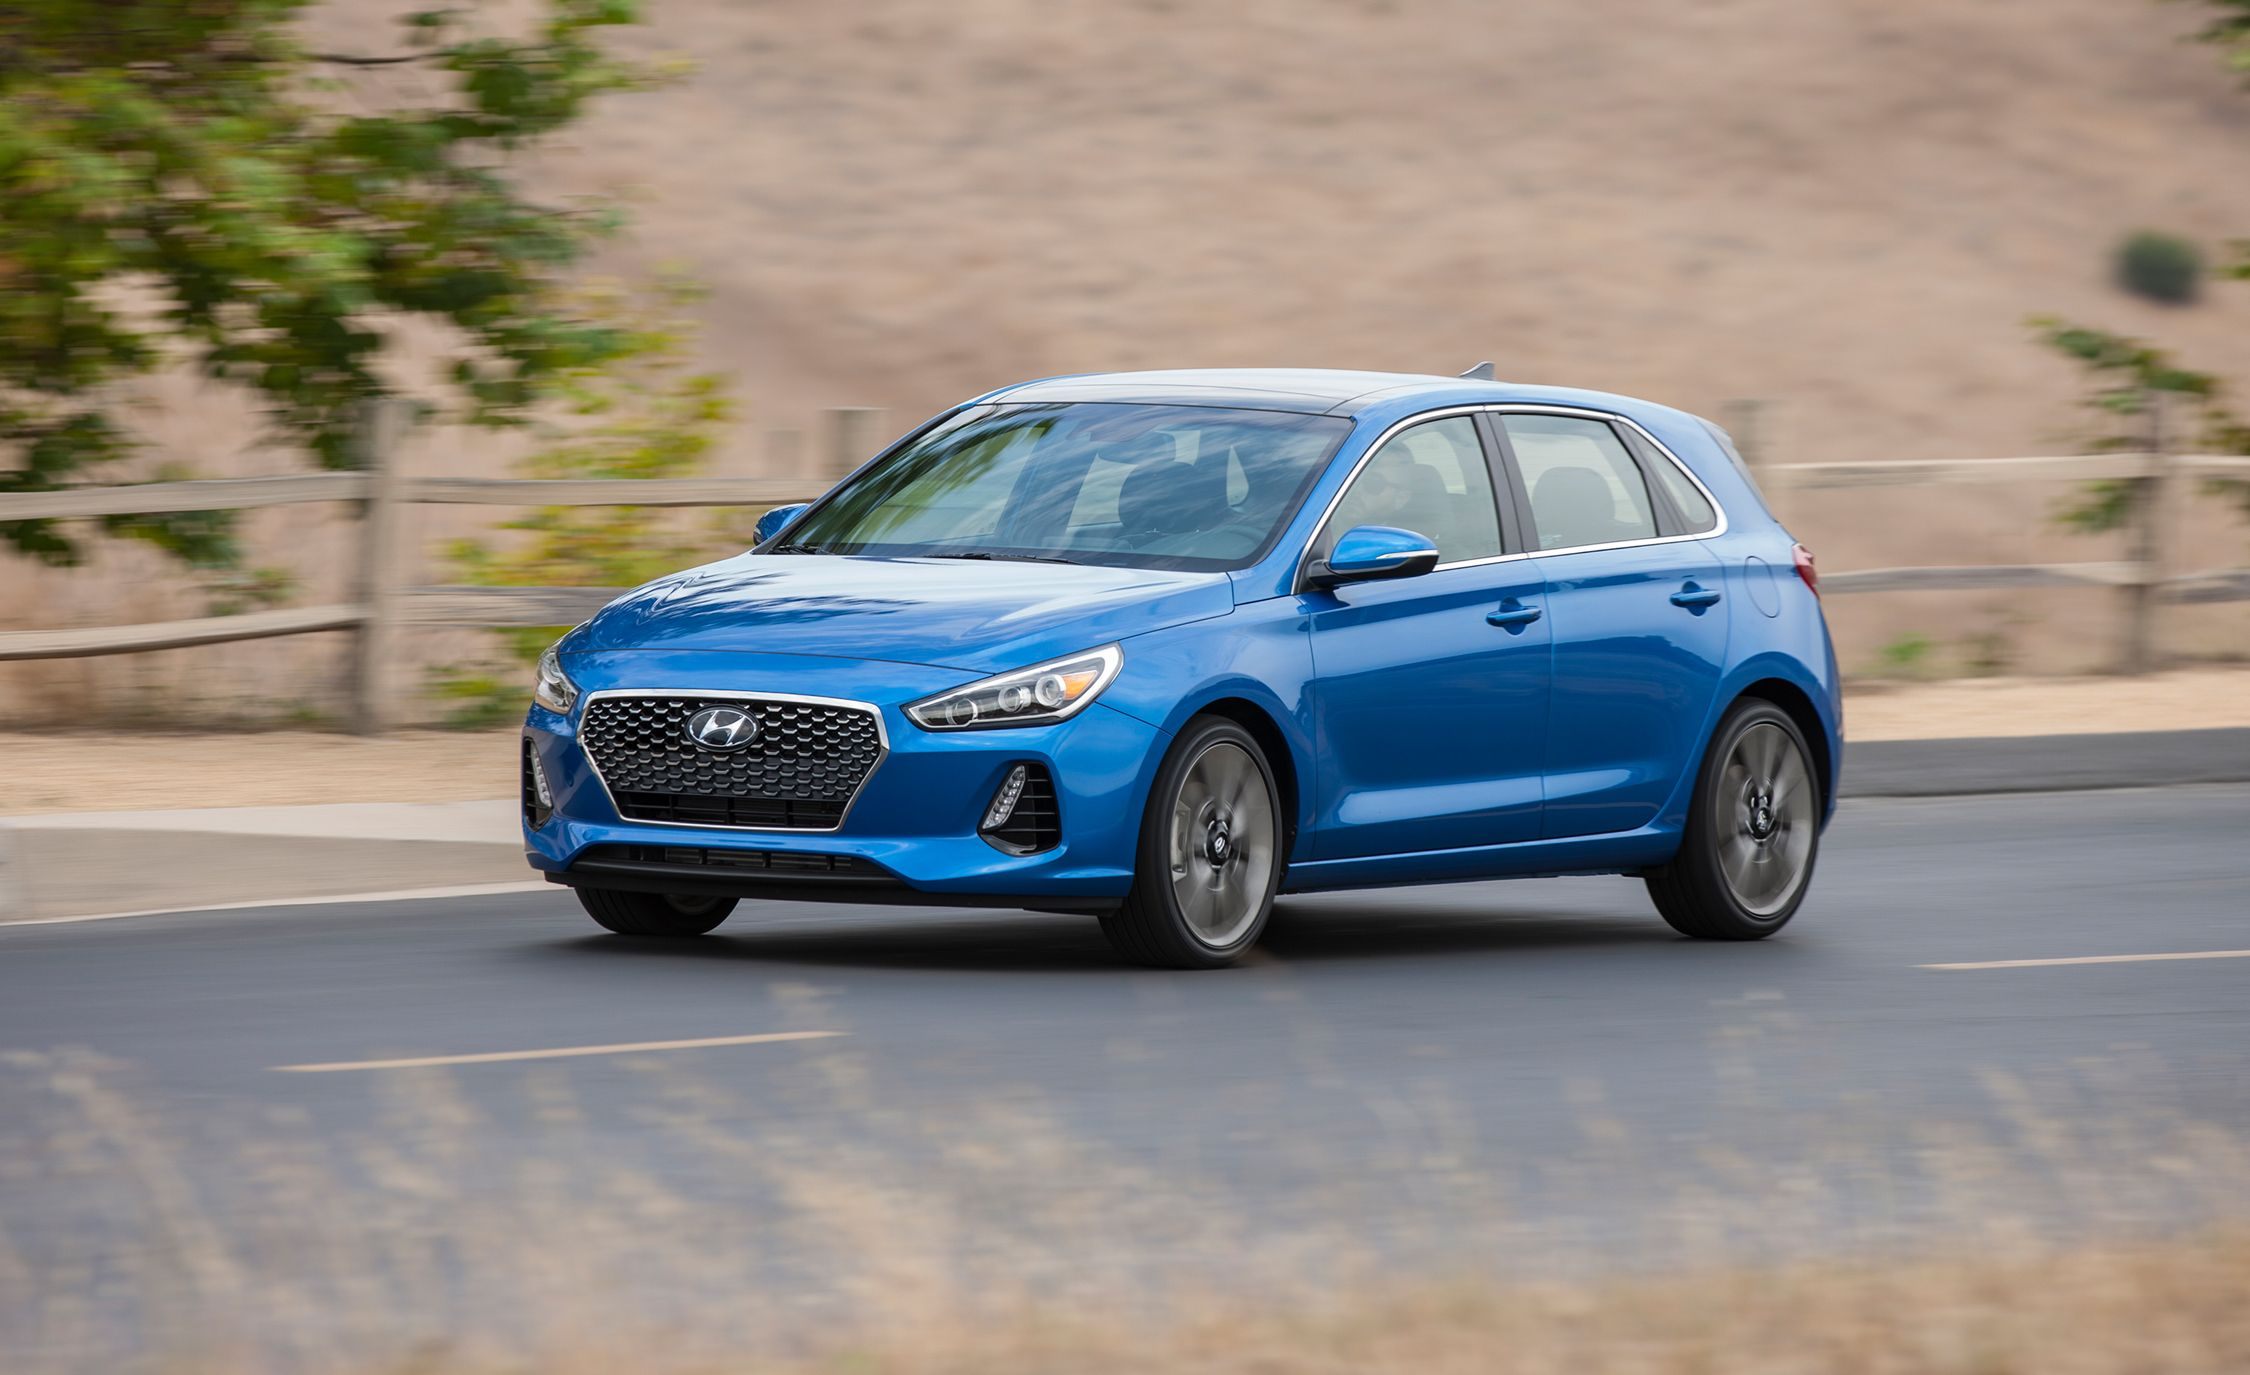 2018 Hyundai Elantra Gt Sport First Drive Review Car And Driver